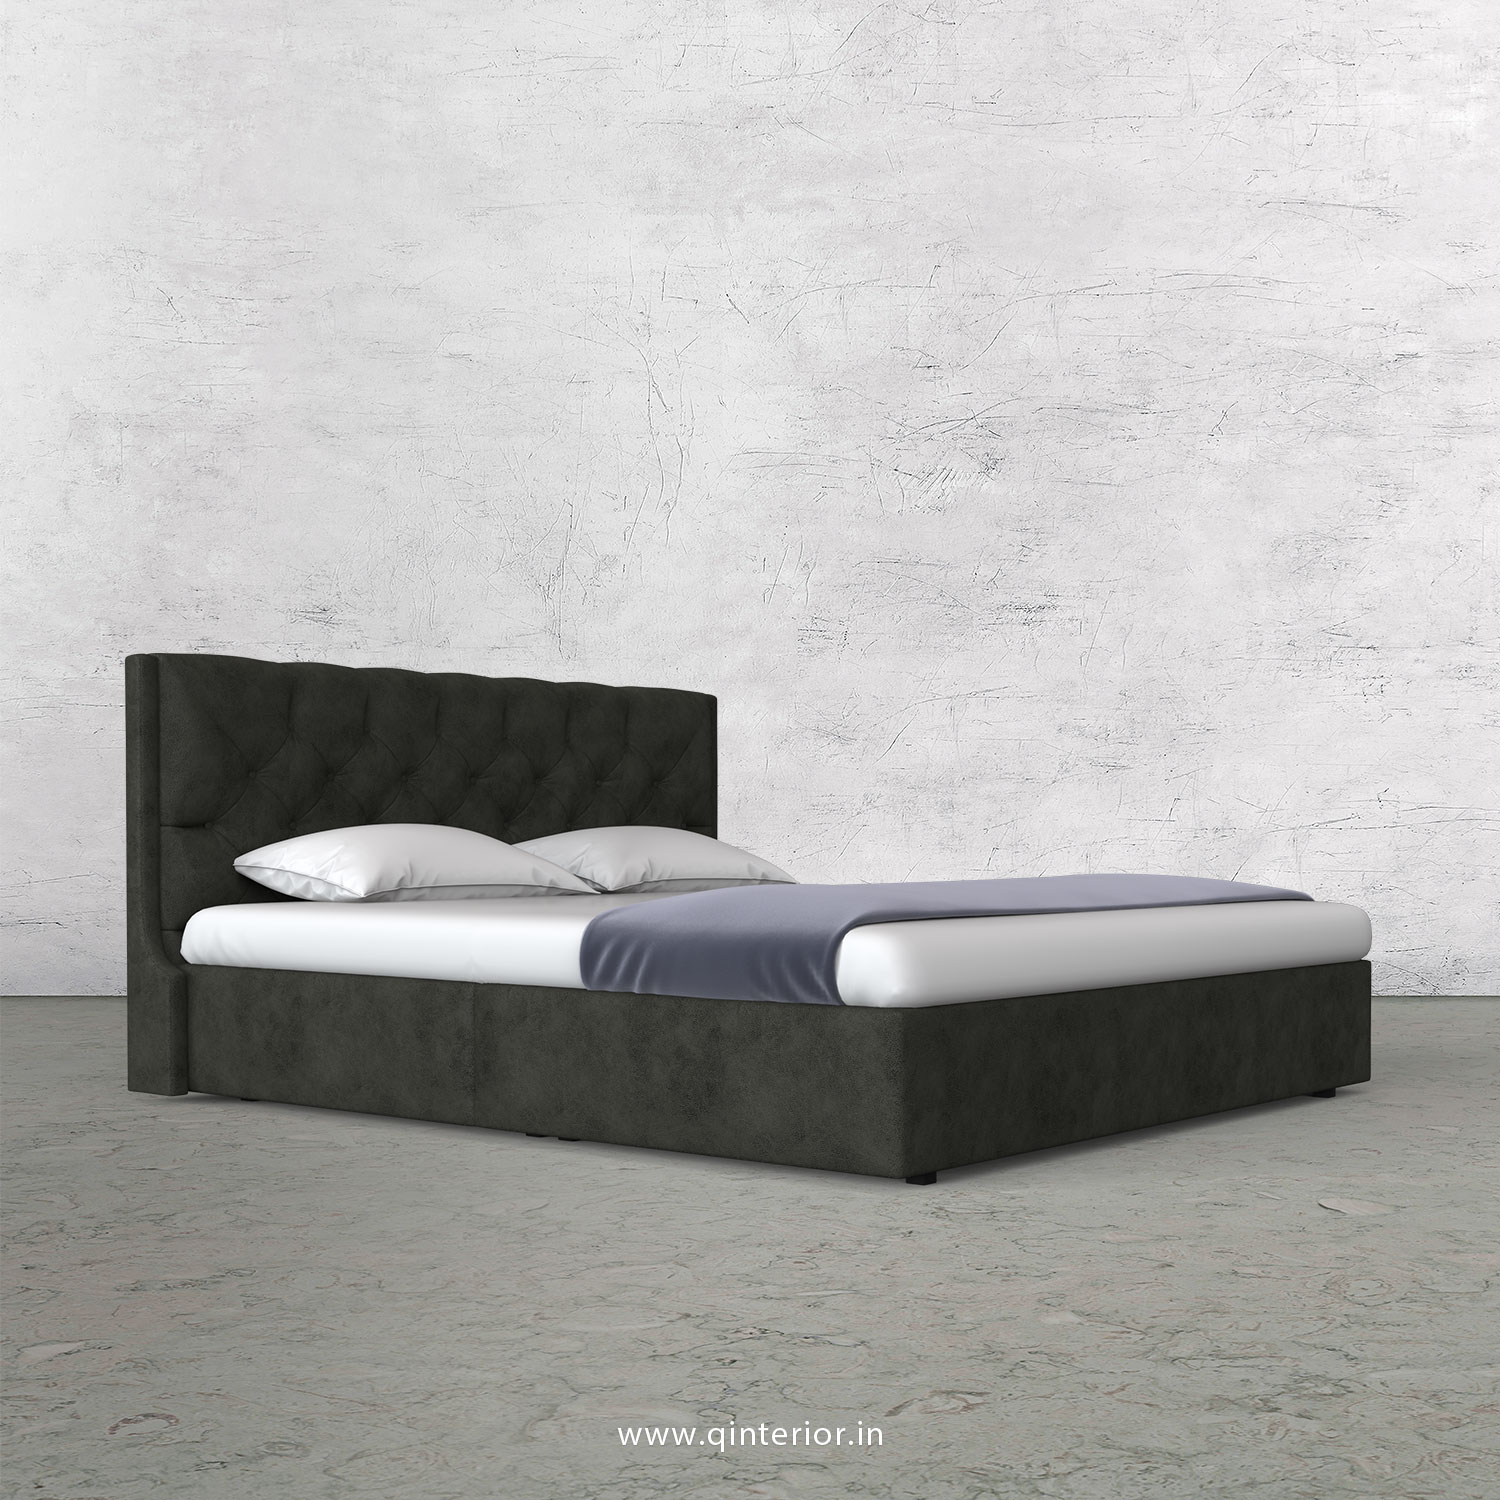 Scorpius King Size Bed in Fab Leather Fabric - KBD009 FL07